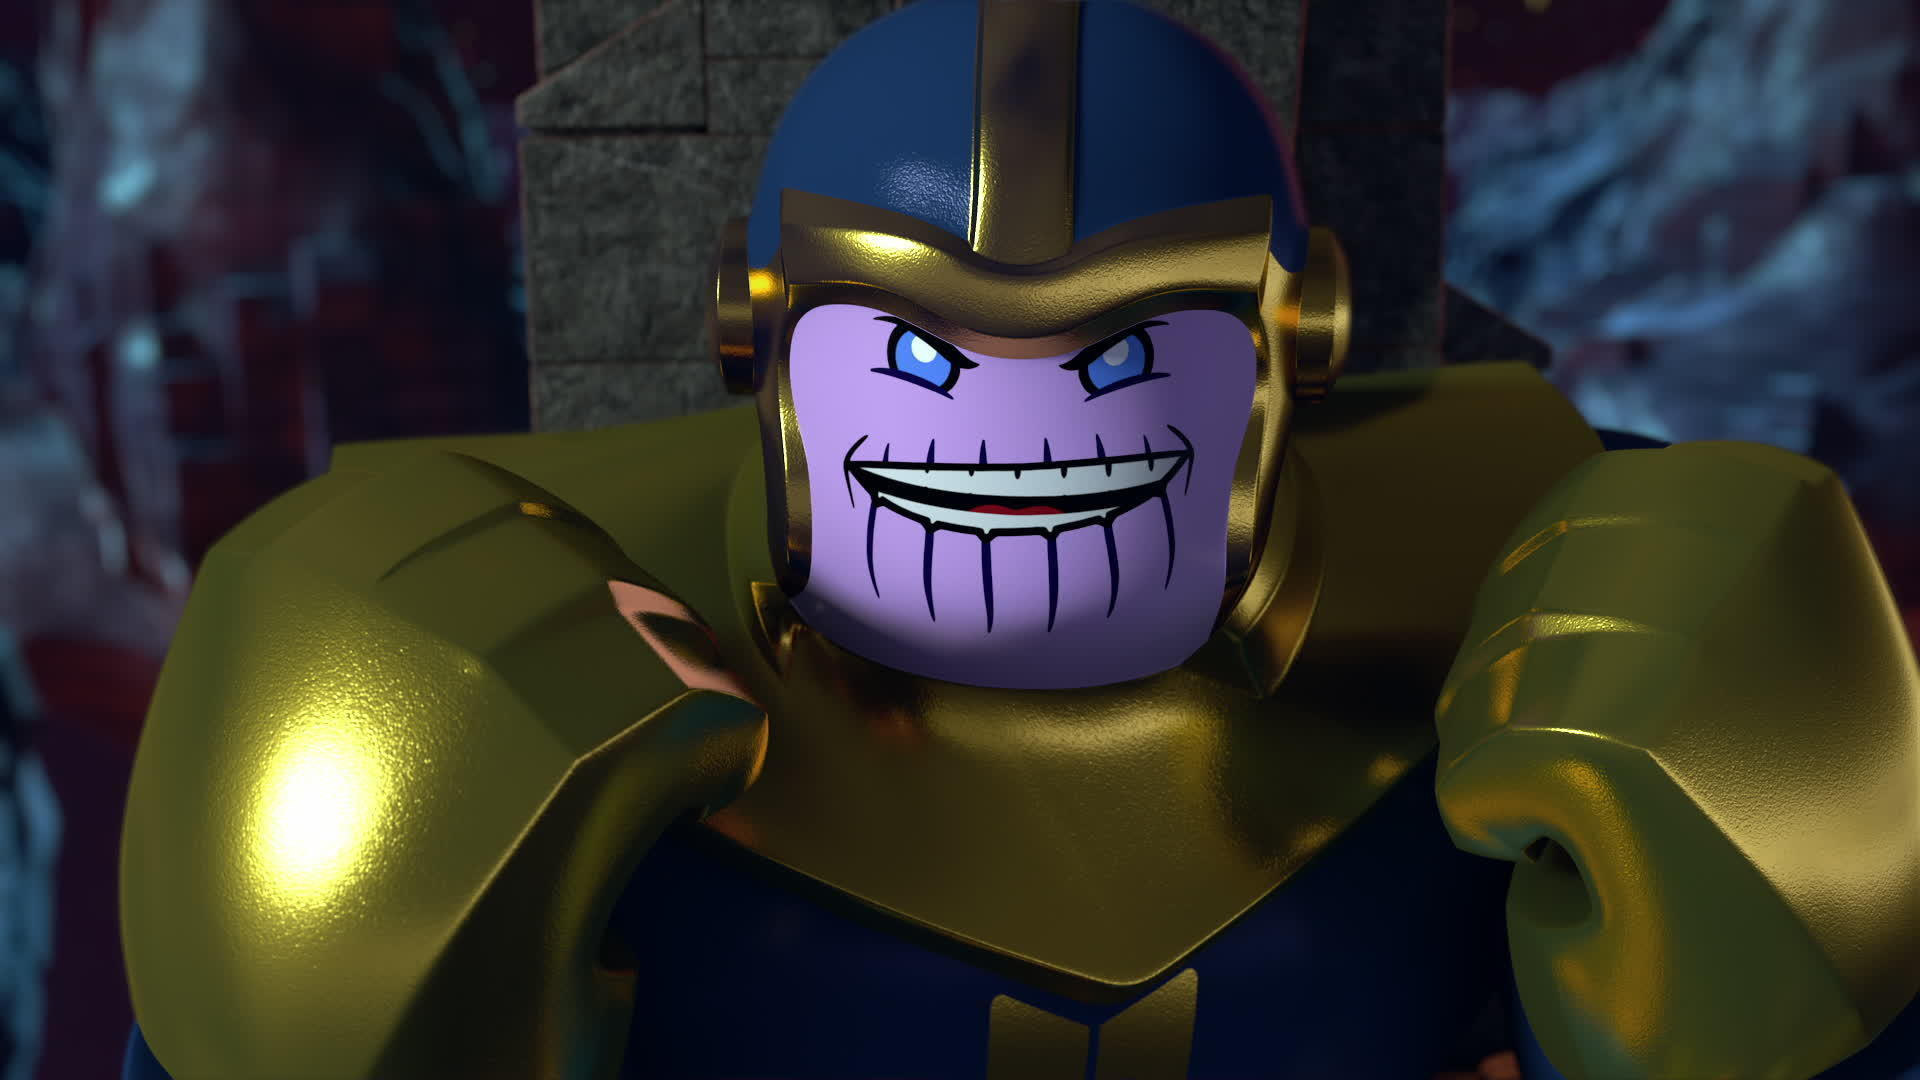 Part 3: The Thing About Thanos